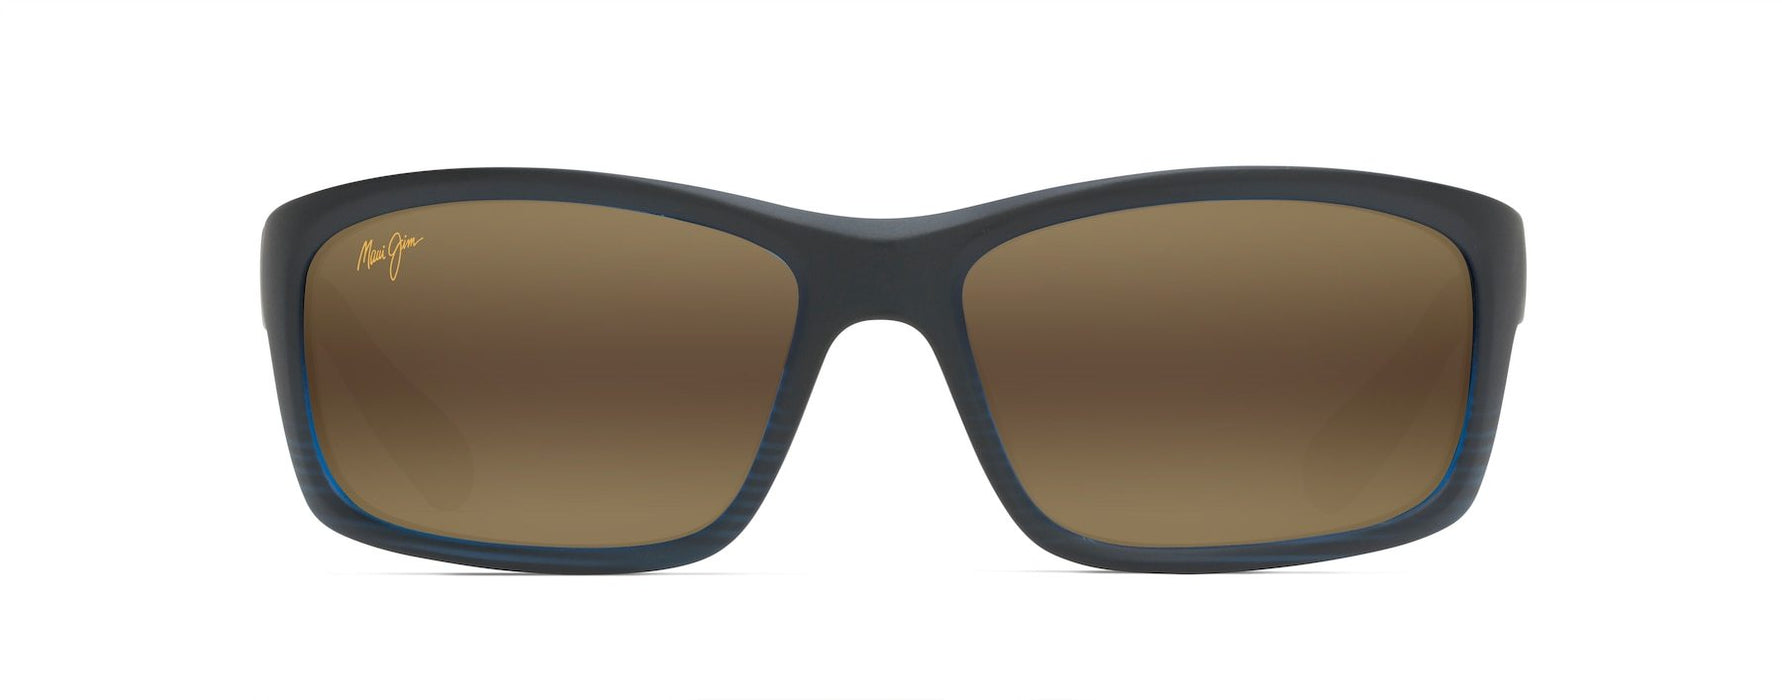 MyMaui Kanaio Coast MM766-005 Sunglasses